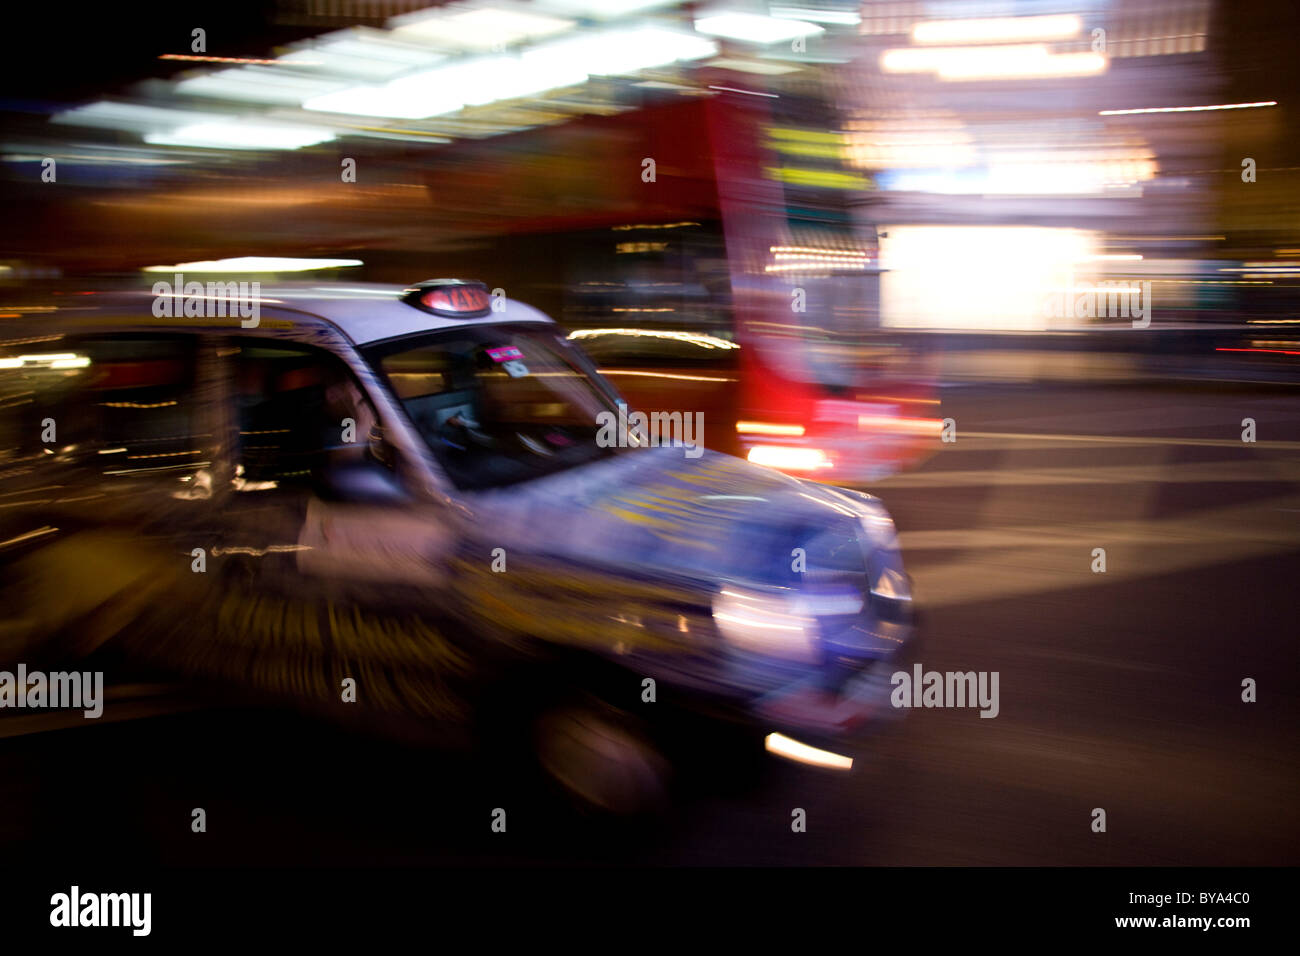 Taxicab in the night, London, England, Great Britain, Europe - Stock Image